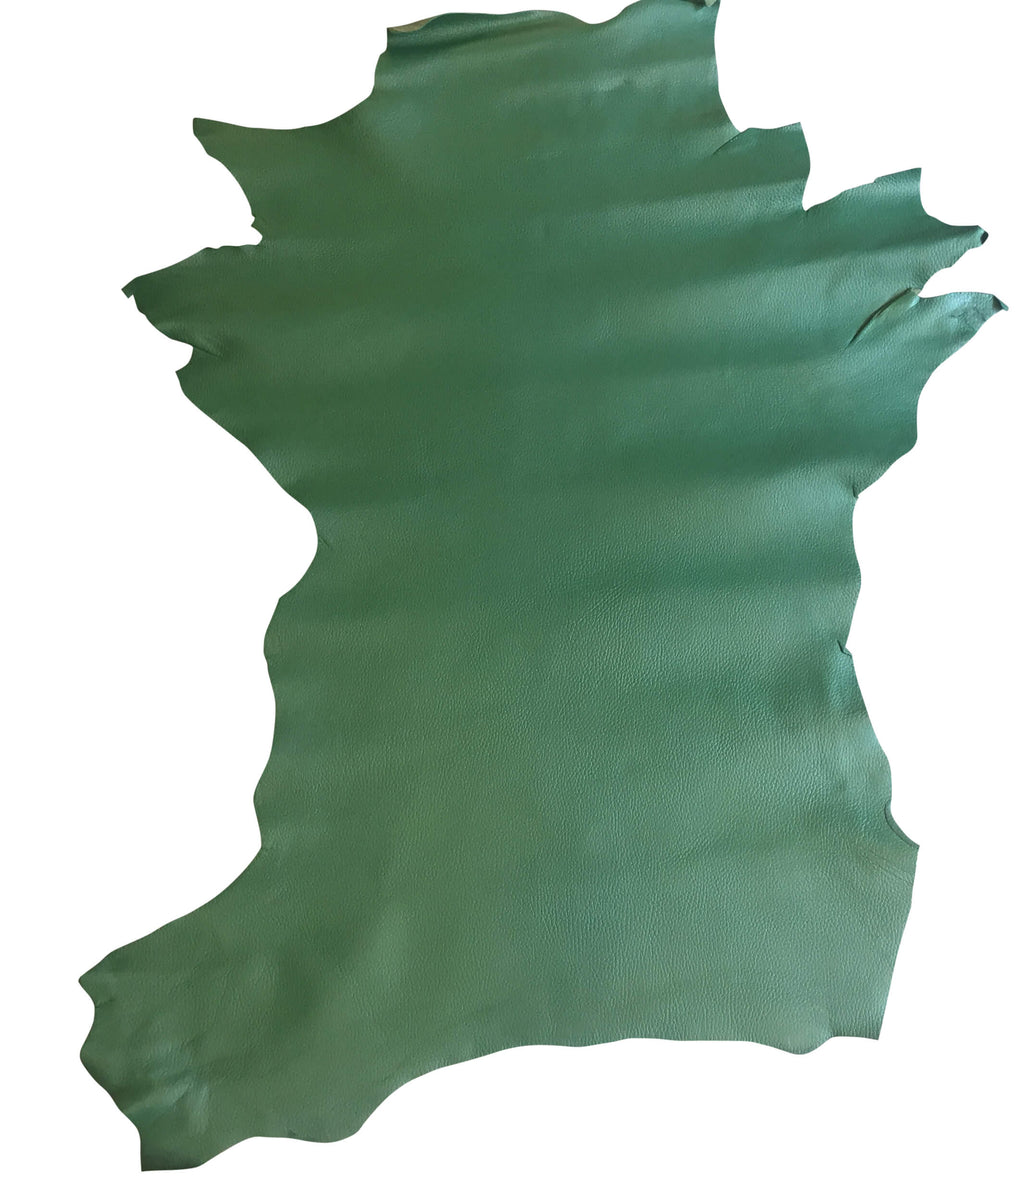 Green Genuine leather hides for Upholstery